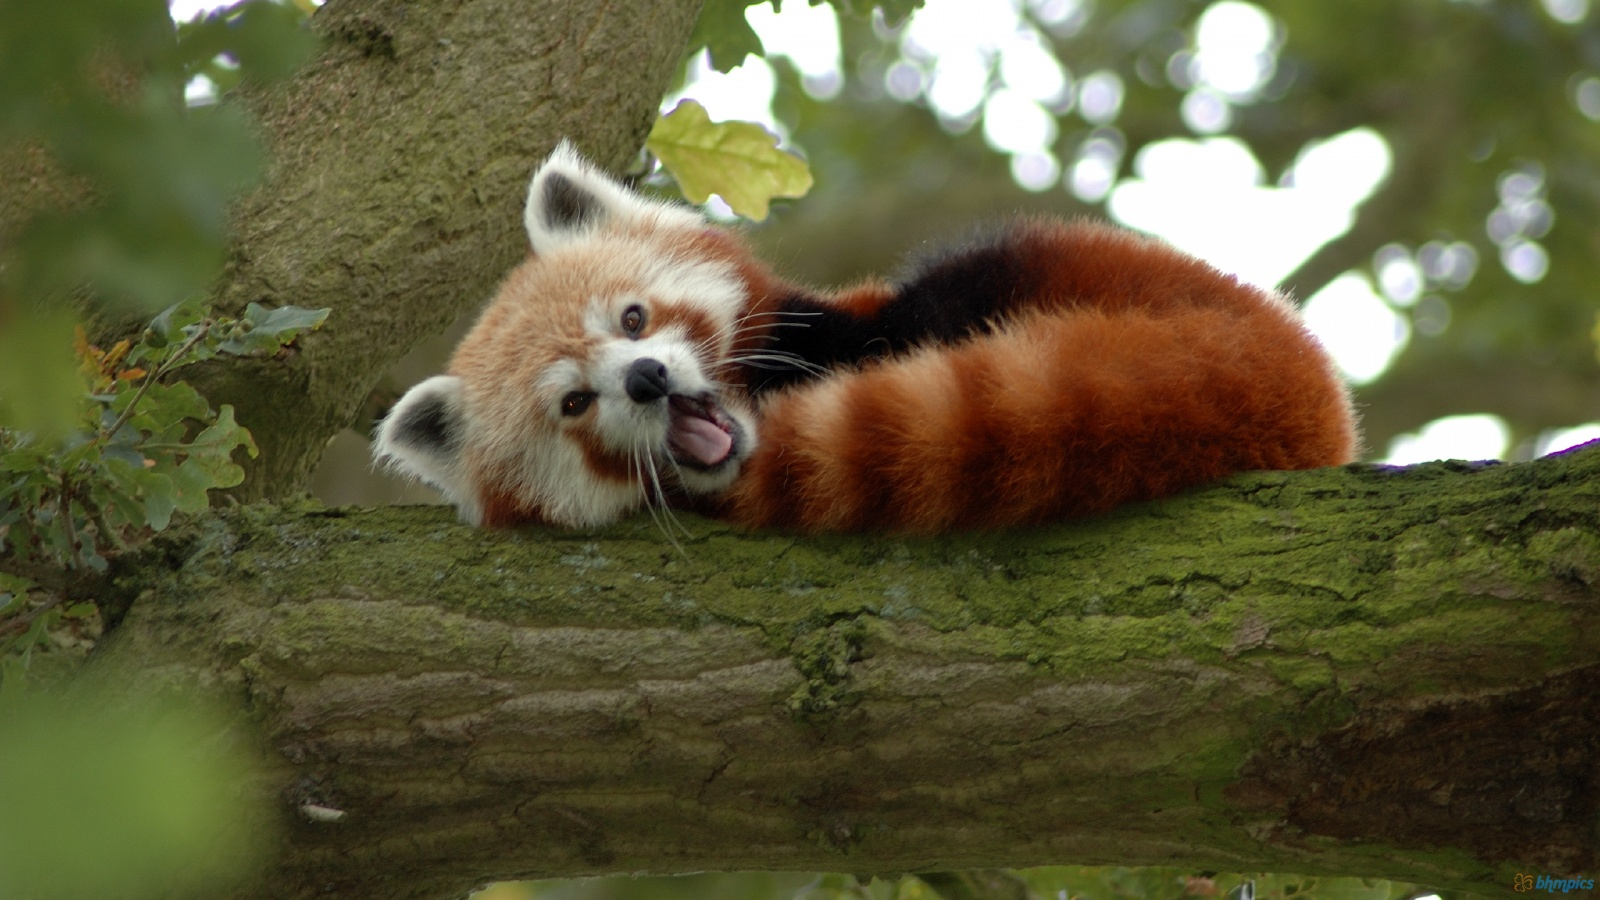 Suzy\'s Animals of the World Blog: THE RED PANDAS